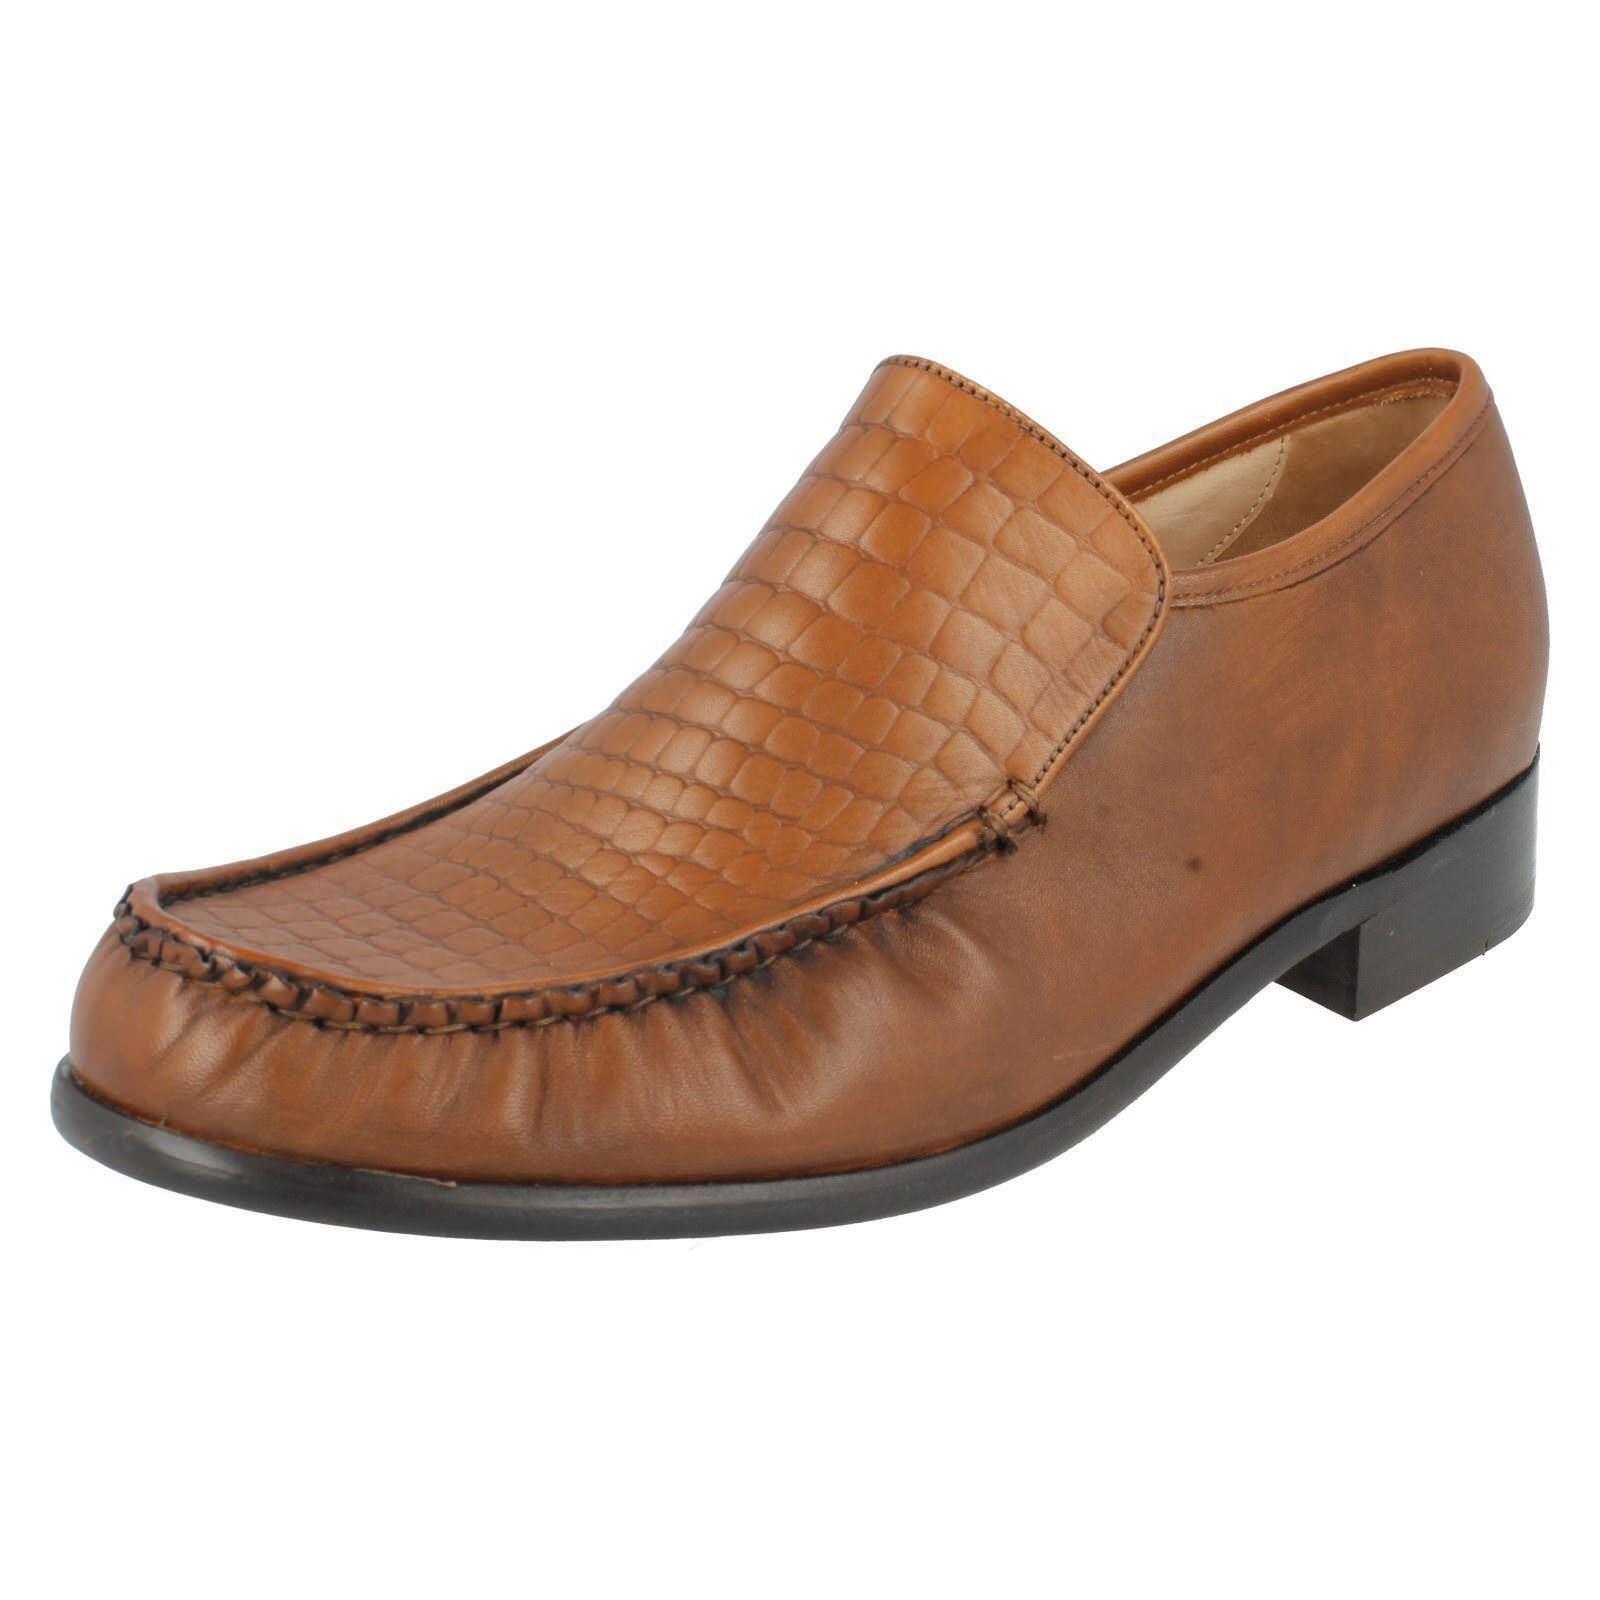 Mens Tan Leather Grenson Slip On Formal shoes Montana